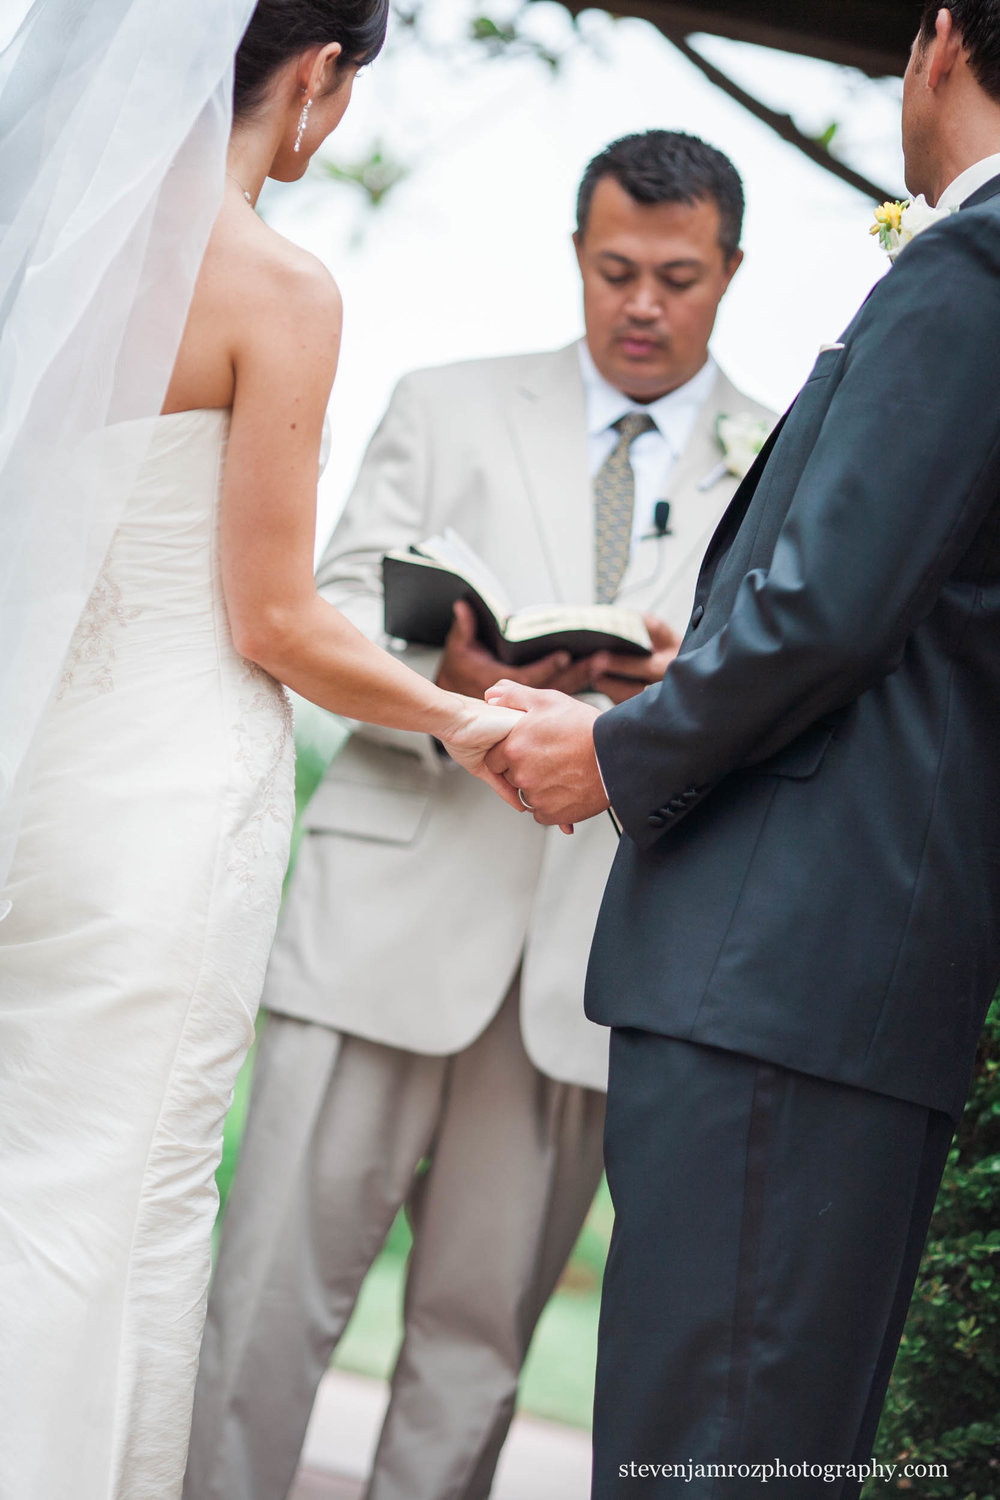 groom-bride-holding-hands-steven-jamroz-photography-0521.jpg